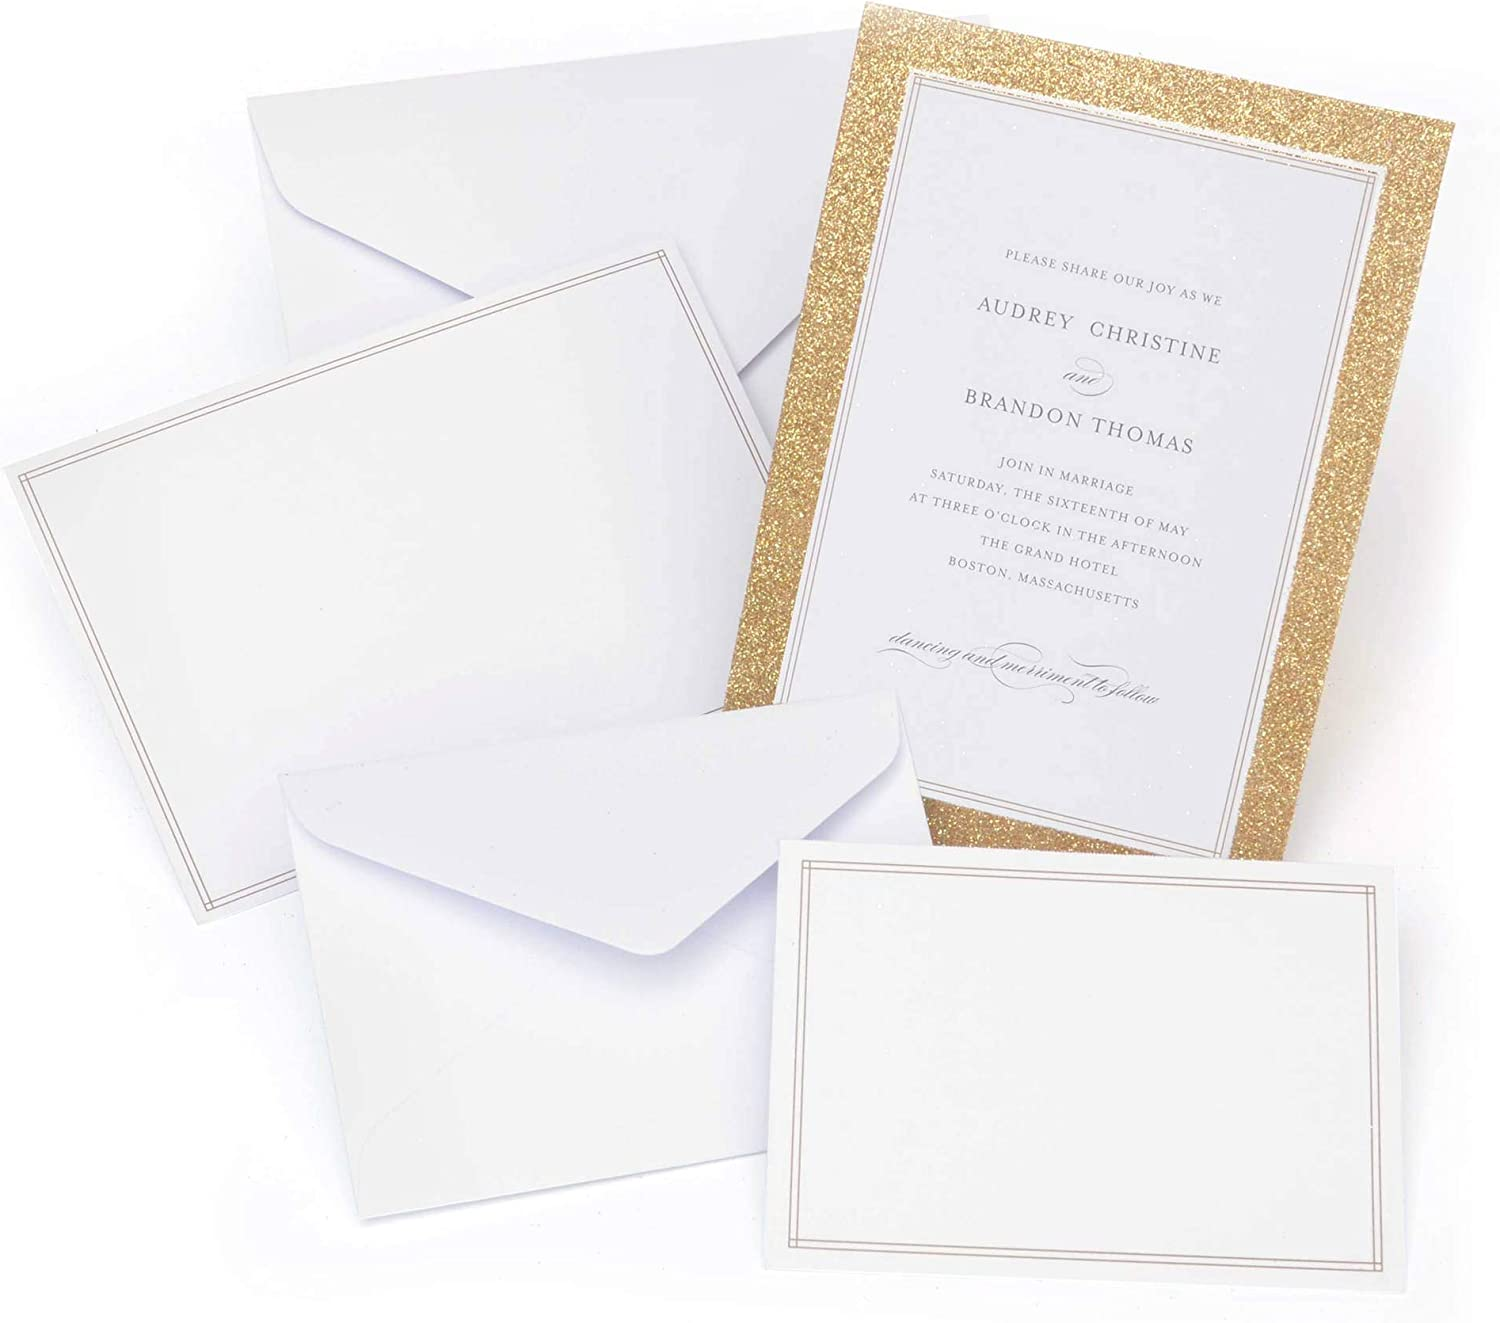 Gartner Studios Gold Glitter Print at Home Wedding Invitation Kit, White